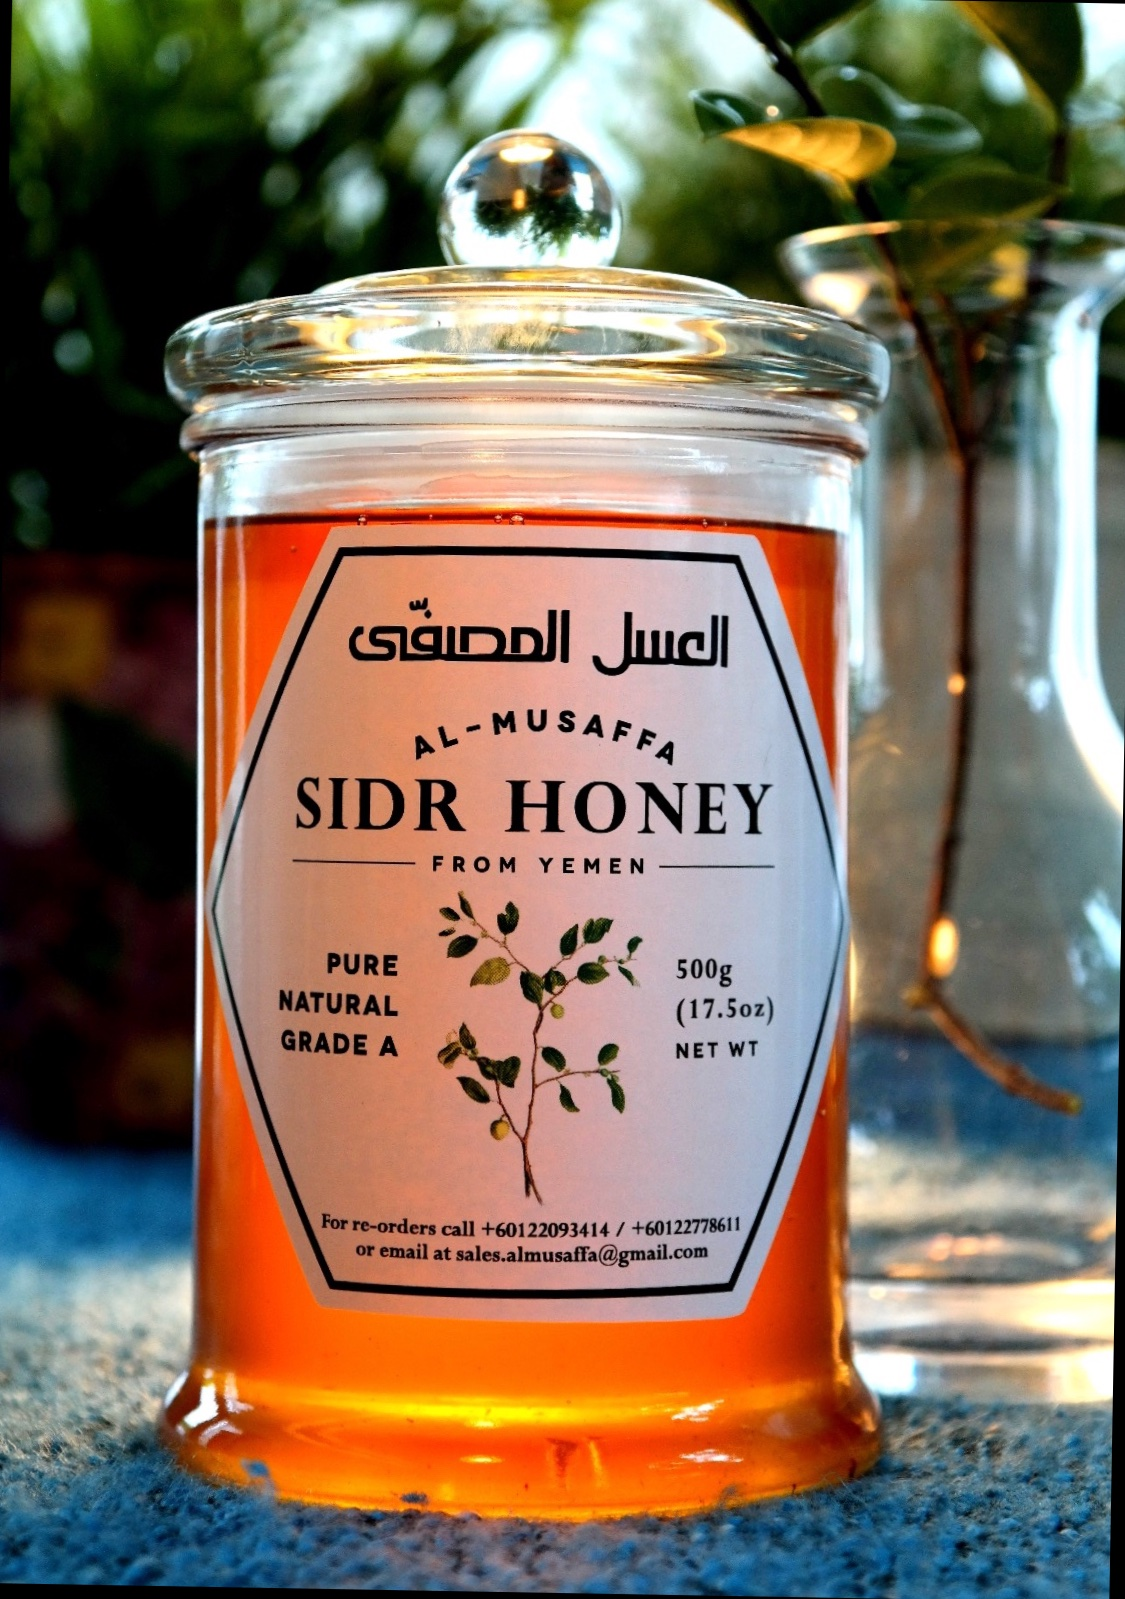 Al-Musaffa Sidr Honey: WHY IS SIDR HONEY SO EXPENSIVE?